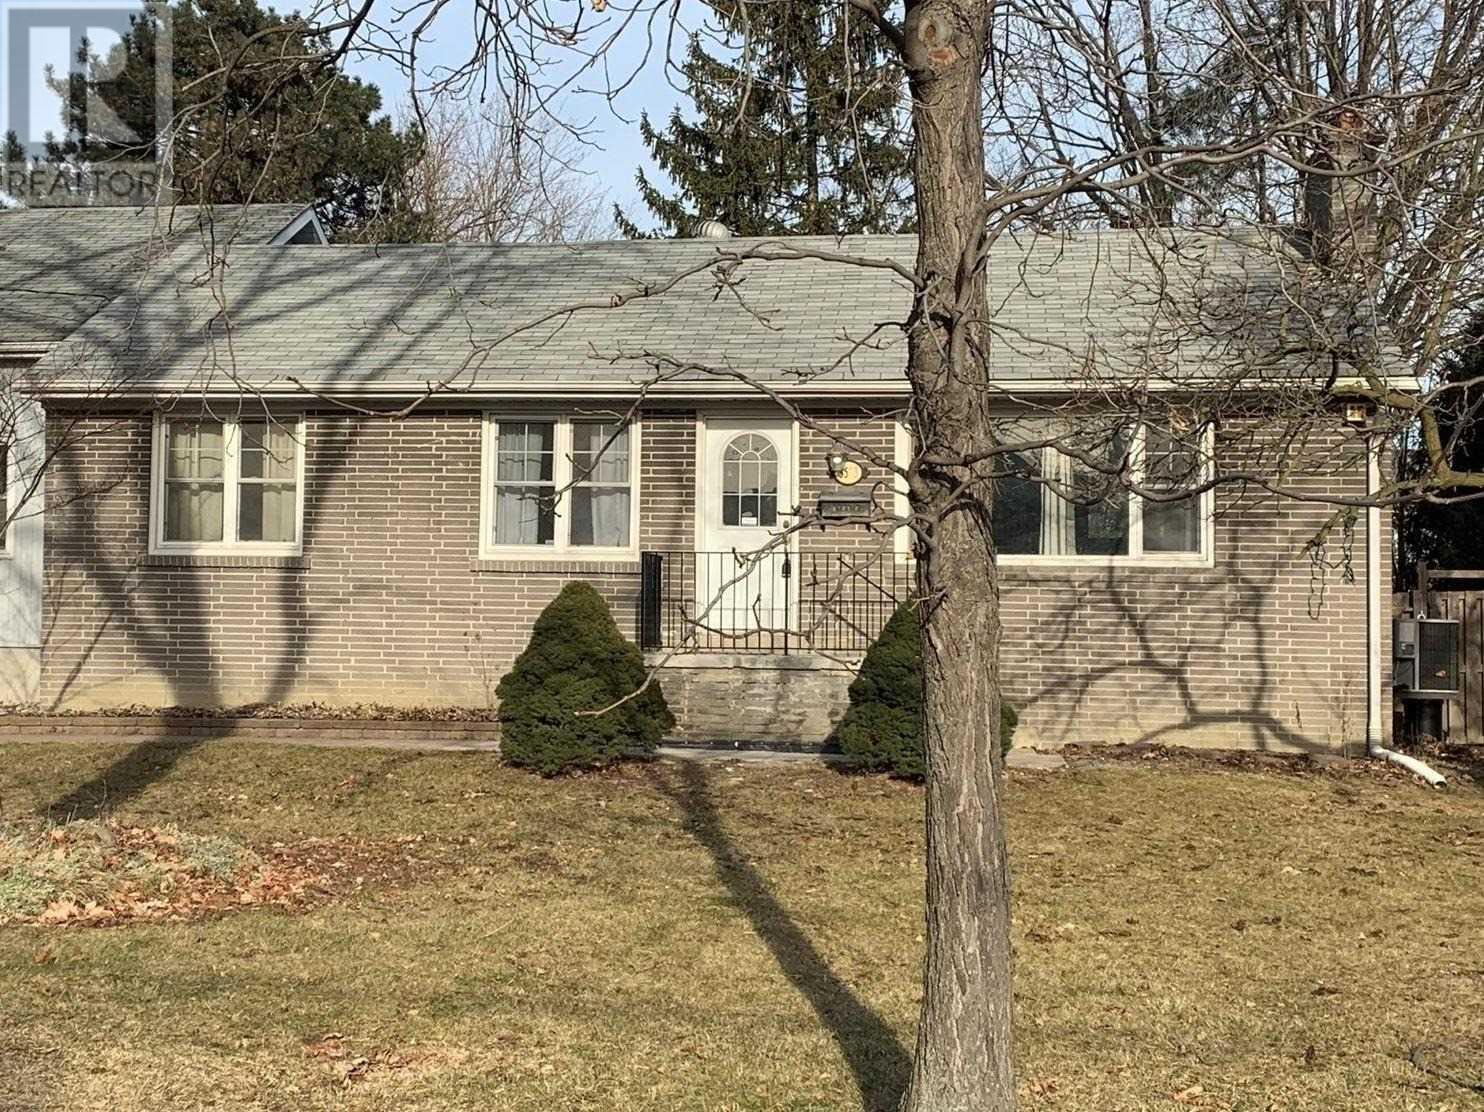 3573-A Palgrave Rd, Mississauga, Ontario  L5B 1W1 - Photo 1 - W4672780